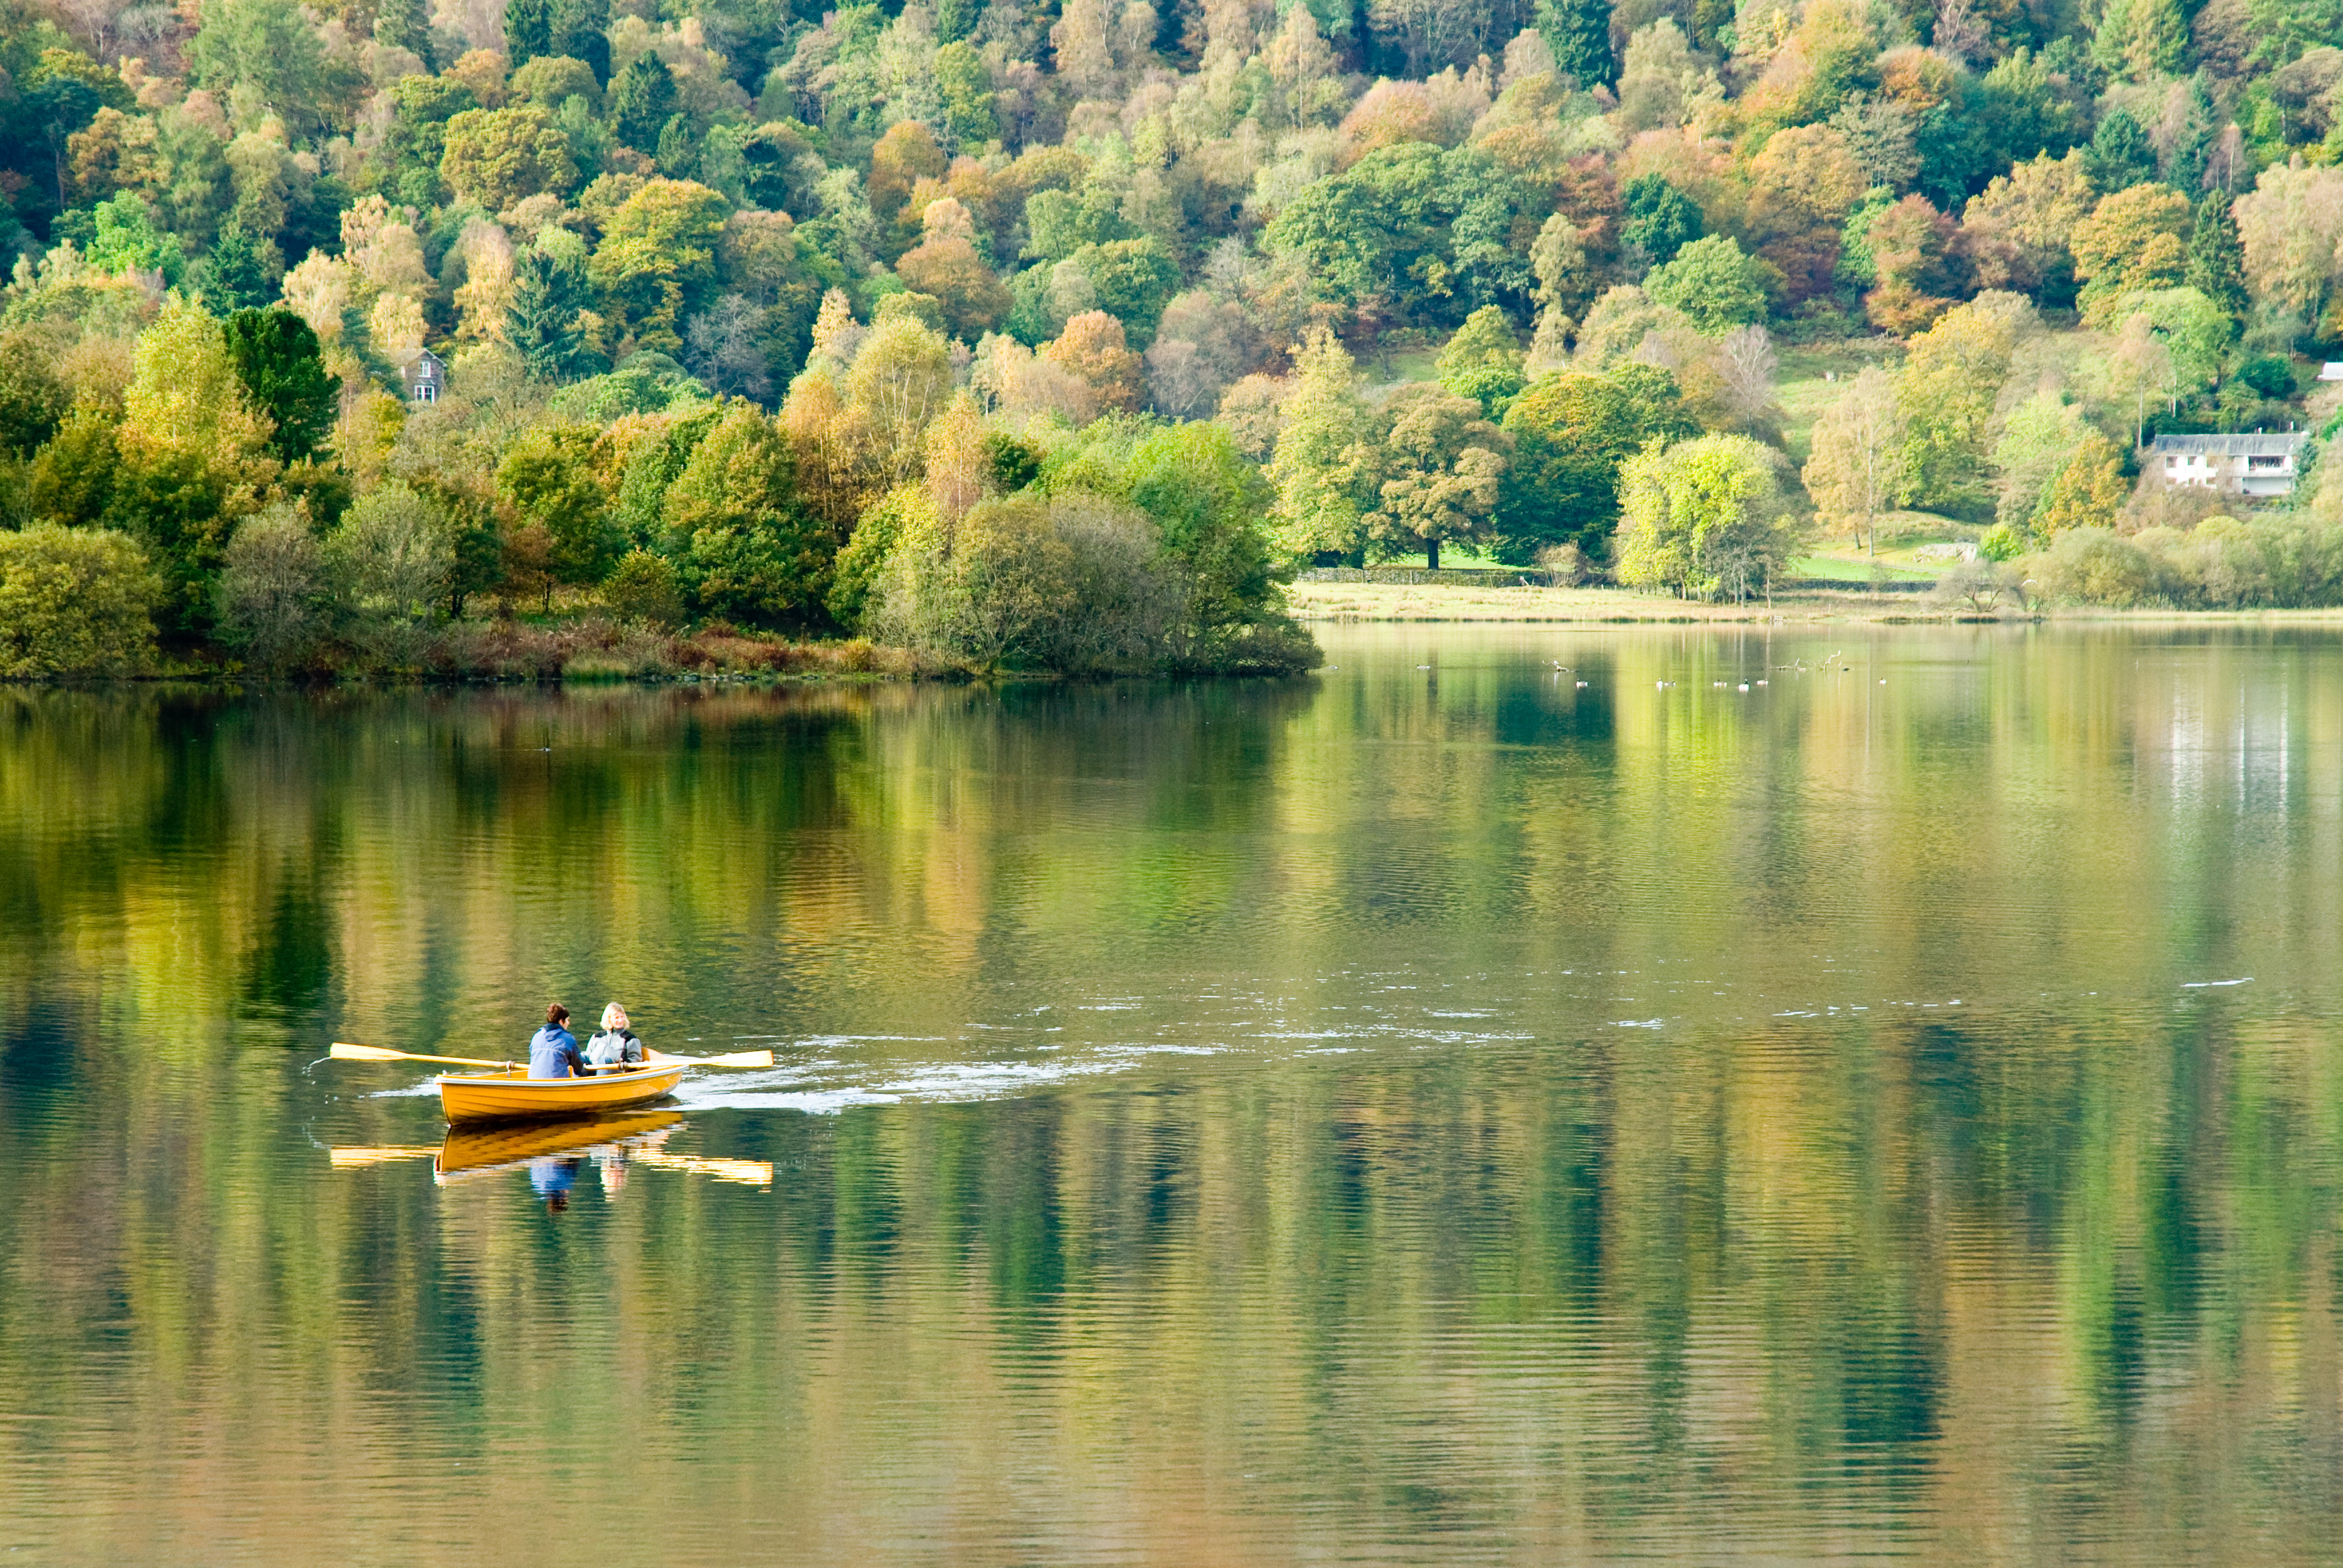 'Row, row, row your boat . . .' A great way to exercise on one of the numerous lakes in the English Lake District. Here are some canoeists on enjoying a little scenic activity.